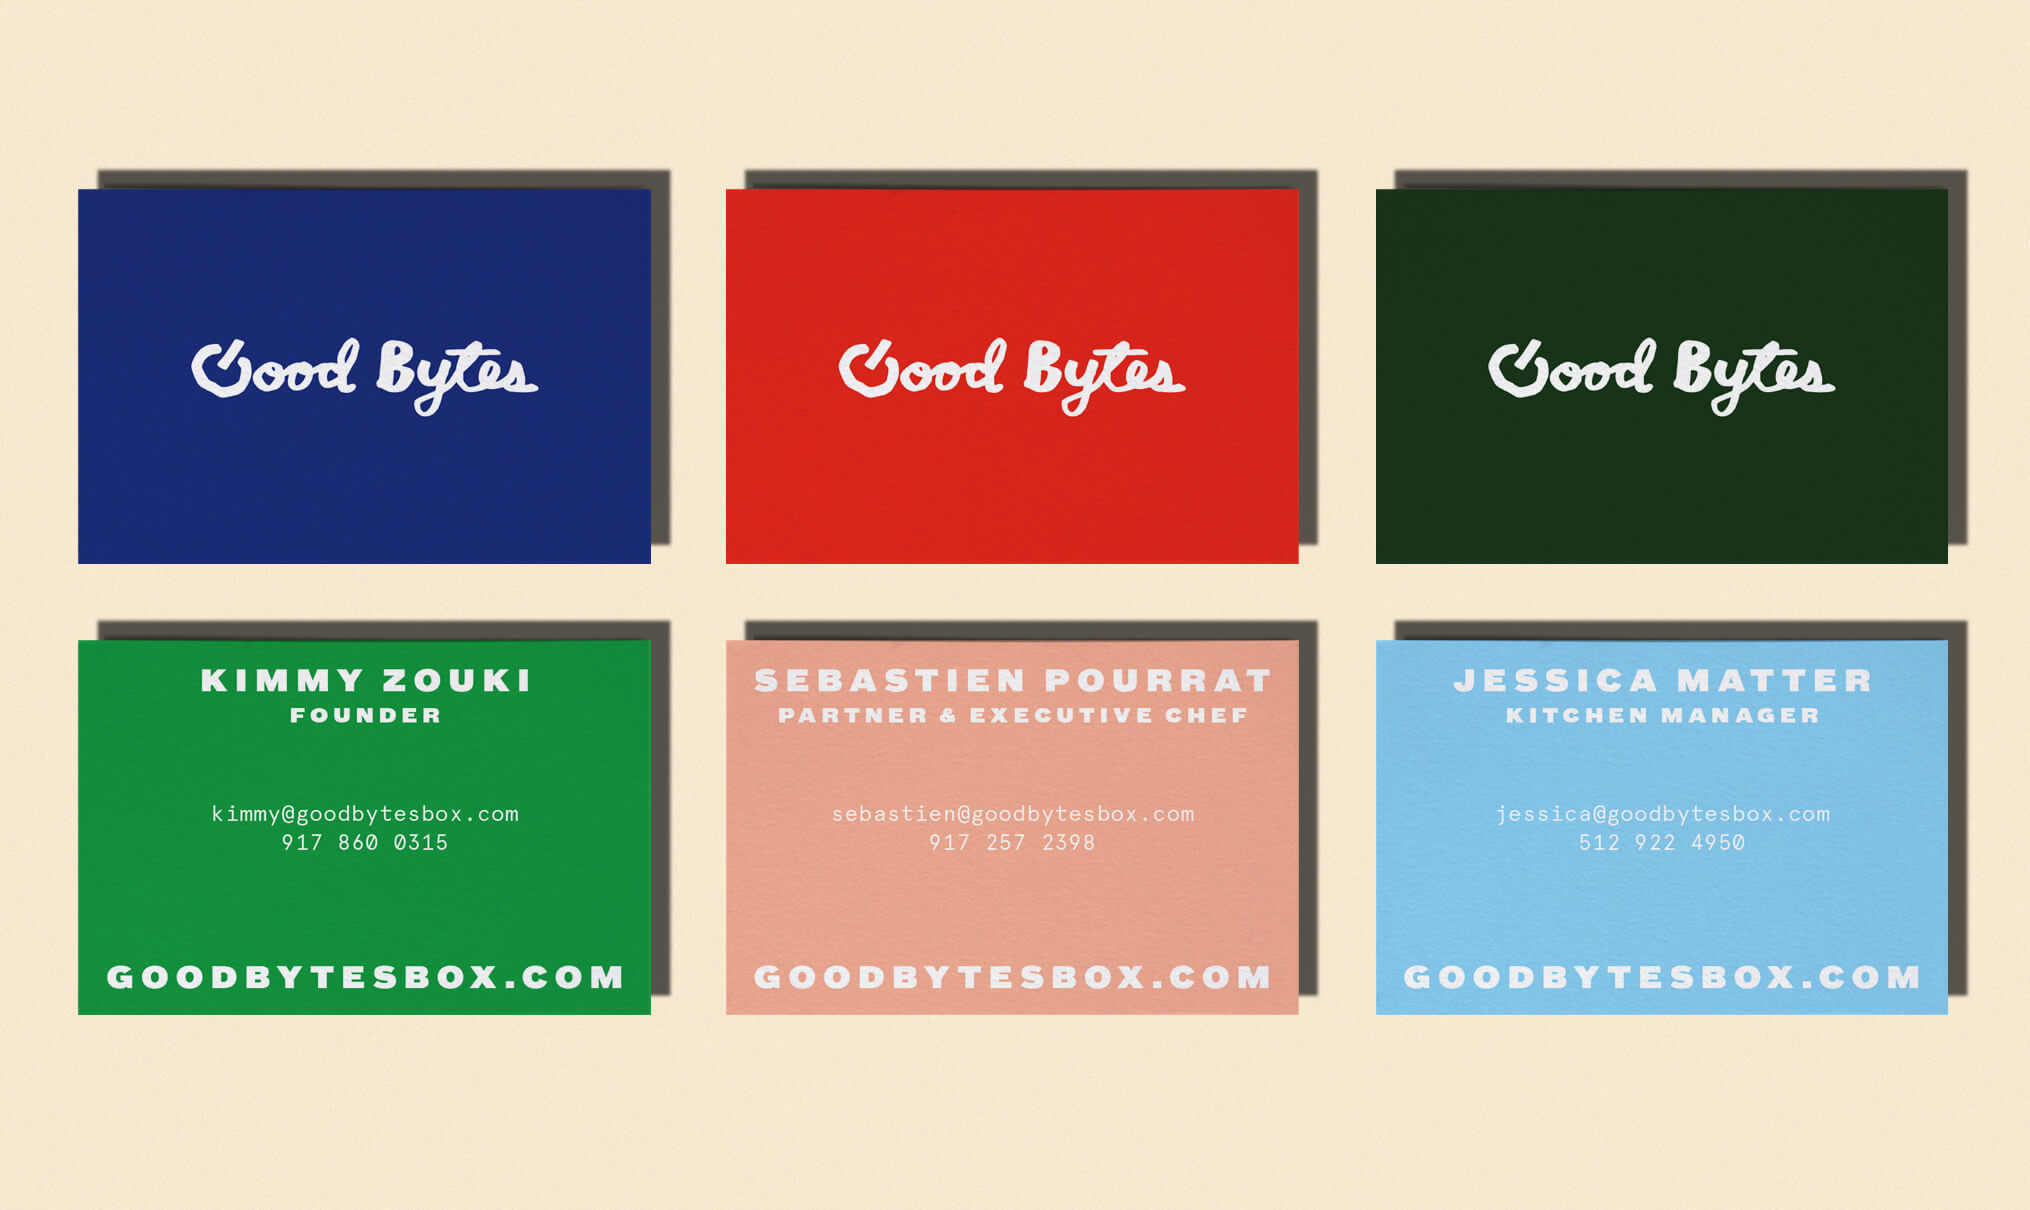 GoodBytes_LargeInset_BizCards_2030x1210